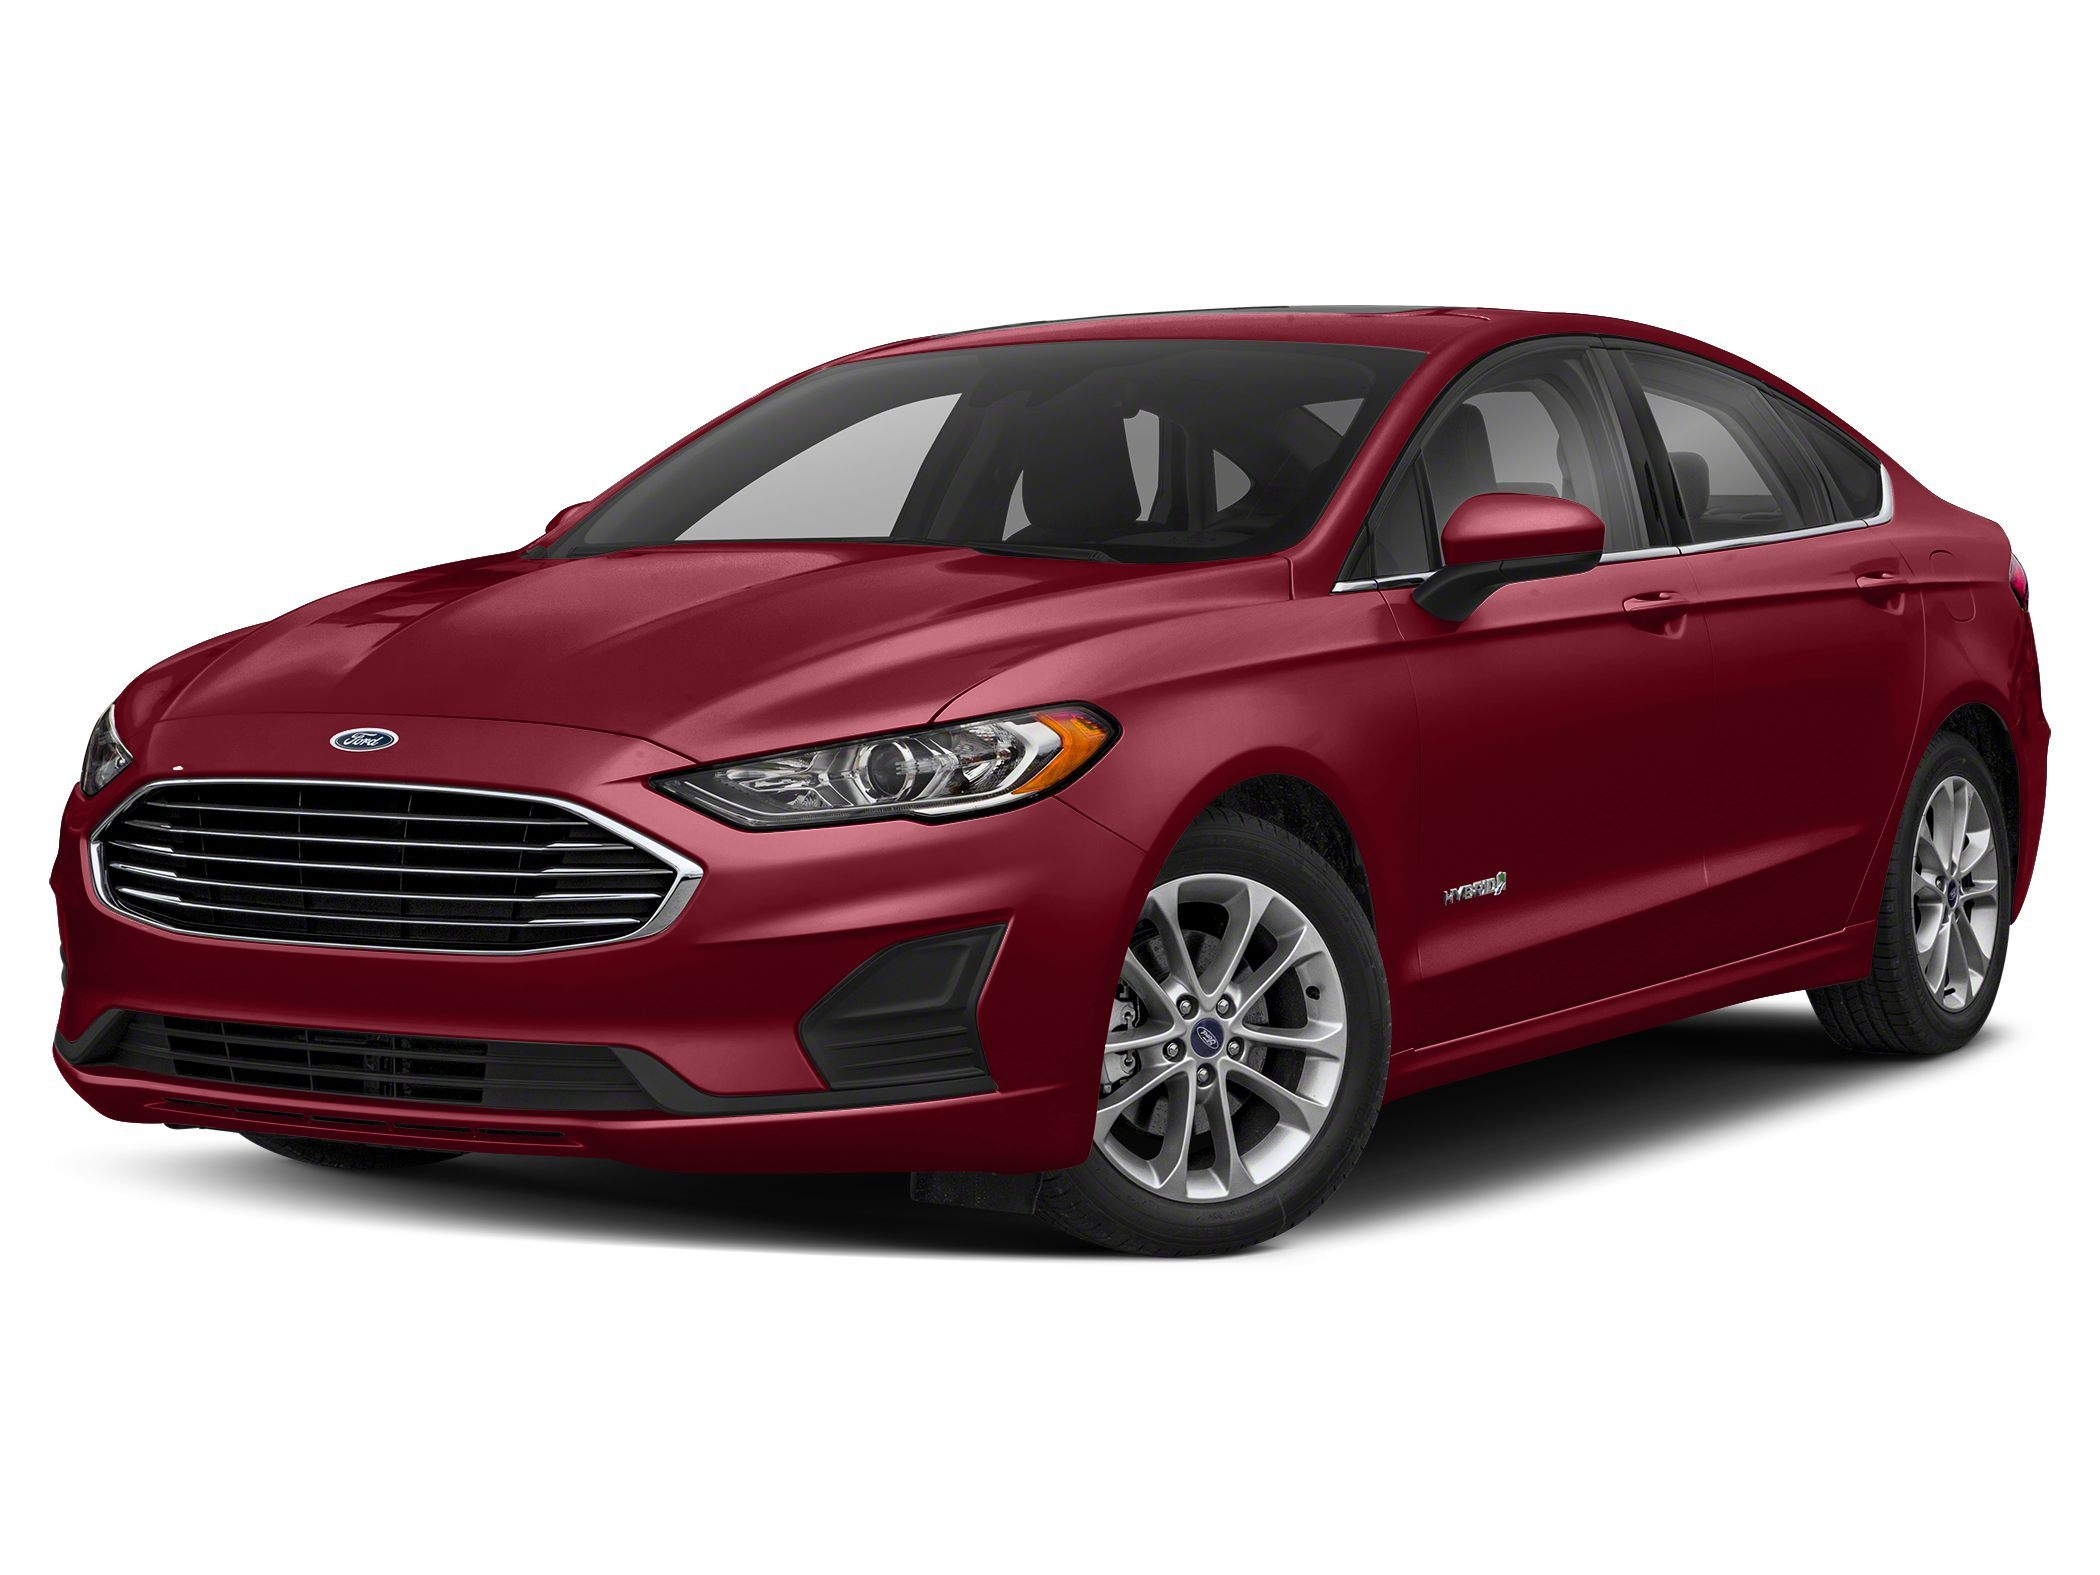 Certified 2019 Ford Fusion Hybrid Se For Sale In Mesquite Tx P19650 Mesquite Certified Pre Owned Ford For Sale 3fa6p0luxkr242159